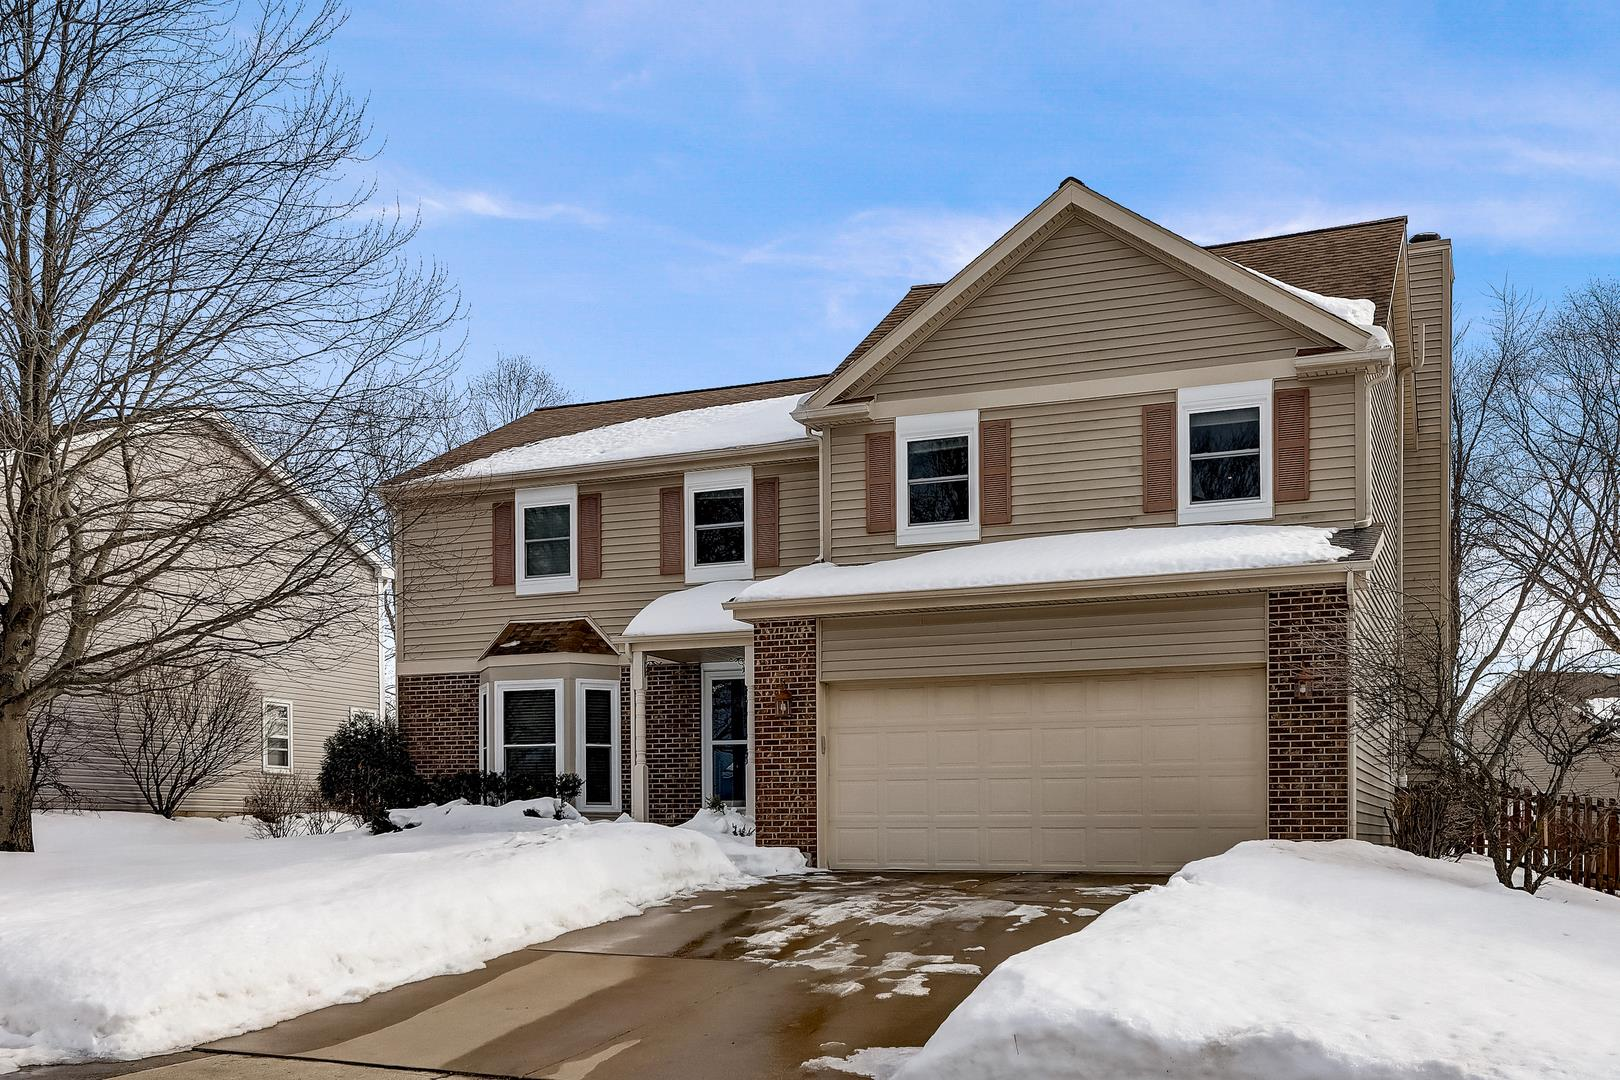 27W137 Chestnut Lane, Winfield, IL 60190 - #: 10998831